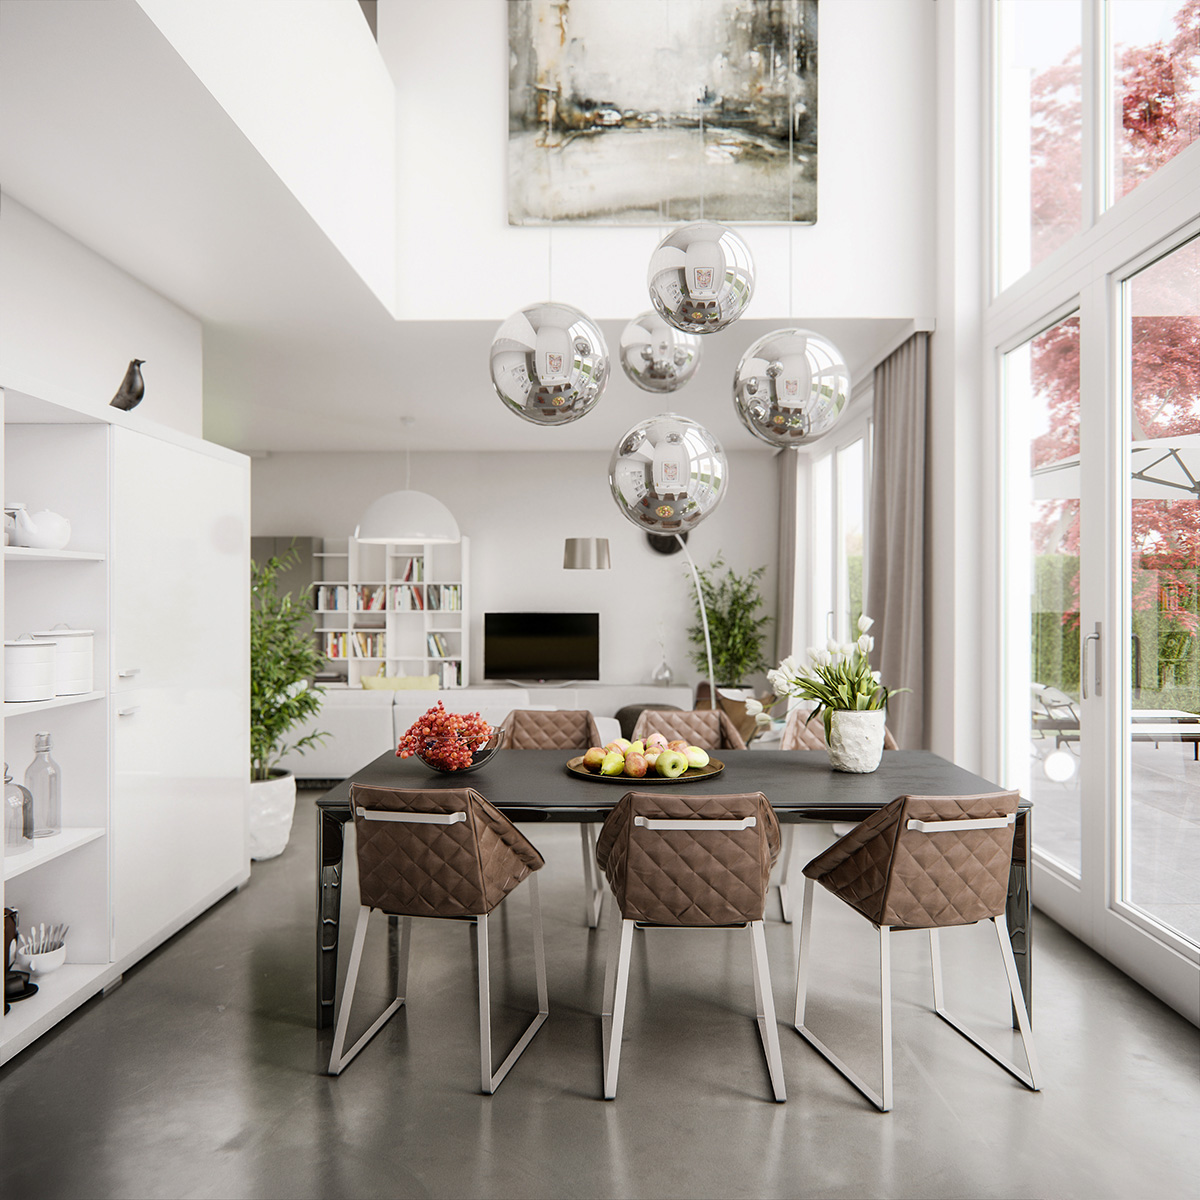 Contemporary Dining Room Ideas: Modern Bright Interior